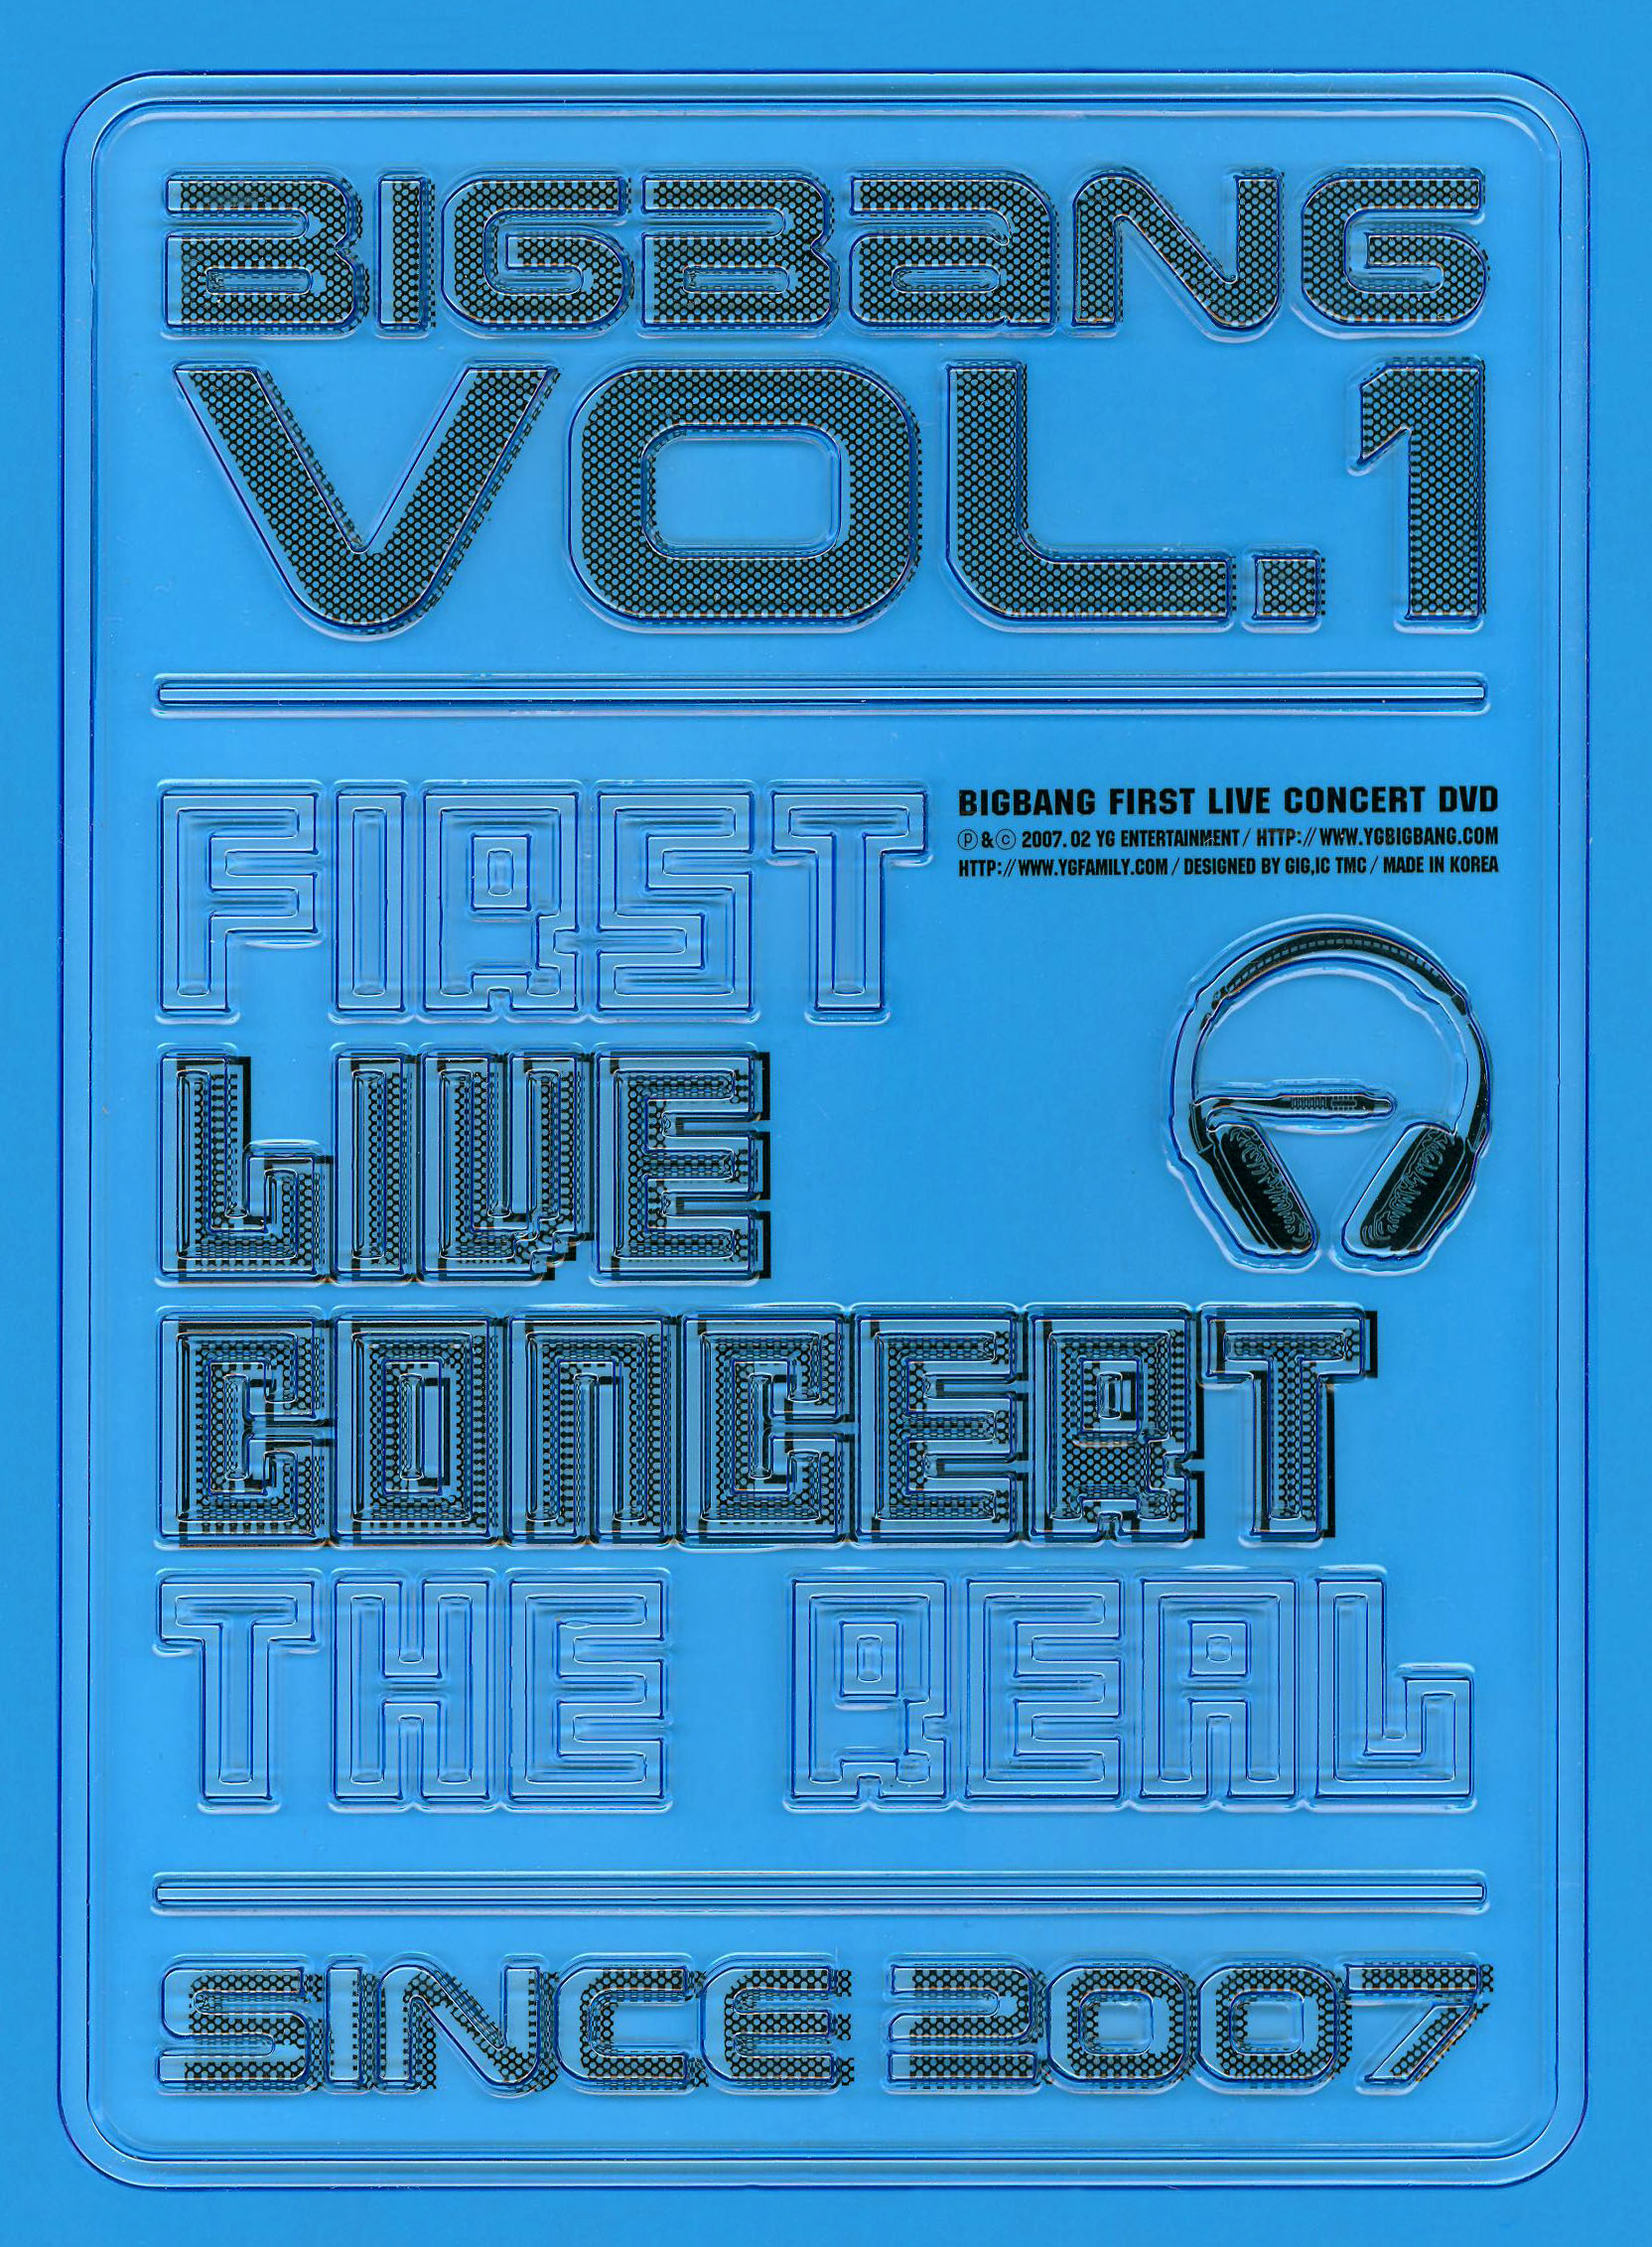 Bigbang: Vol. 1: First Live Concert - The Real - Since 2007